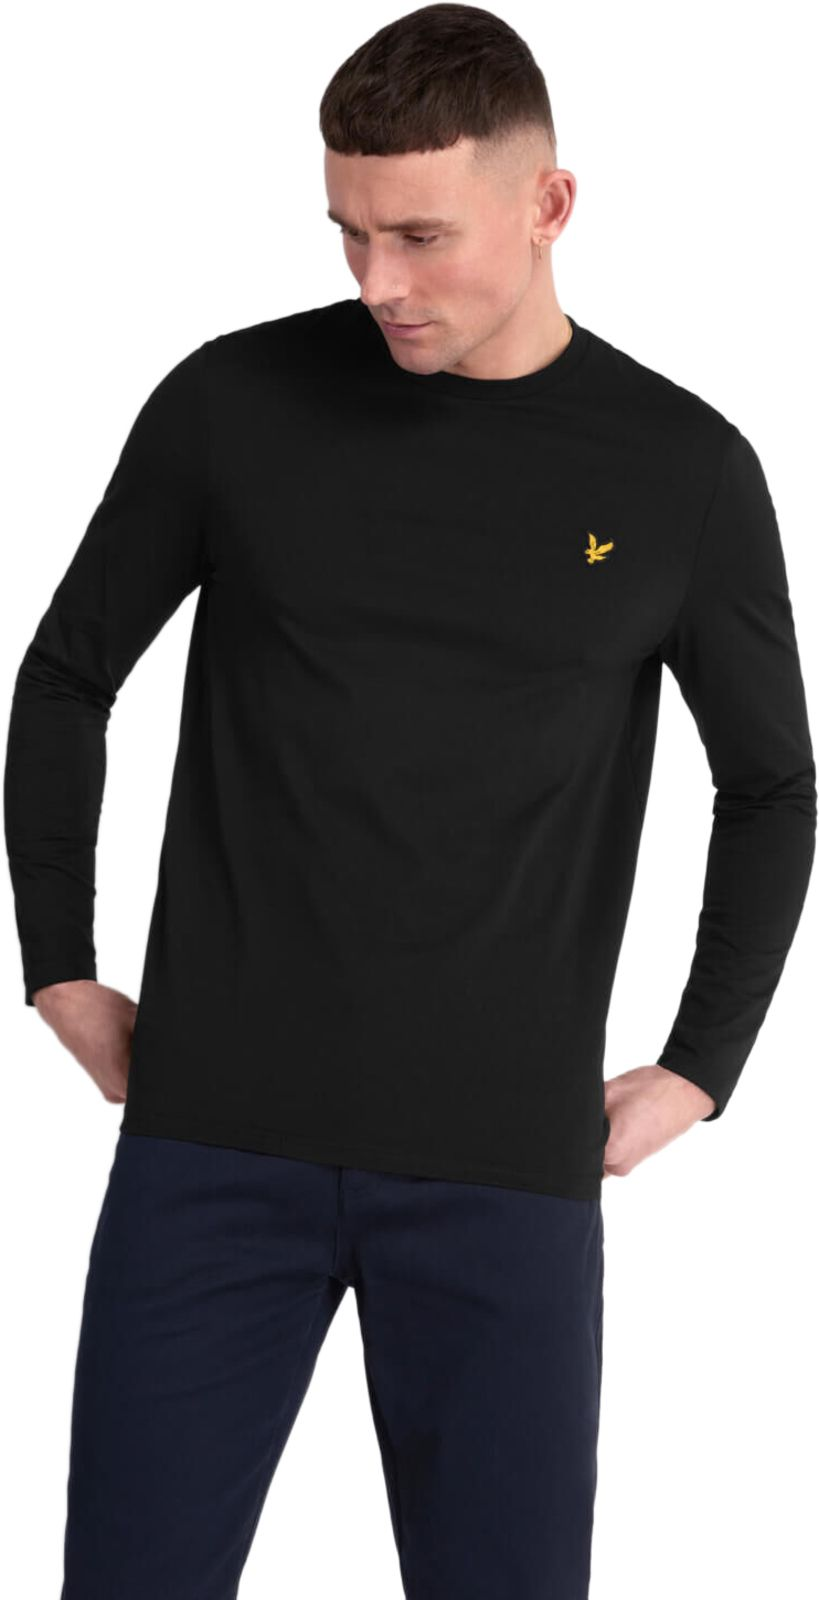 Lyle & Scott Long Sleeve T-Shirt Black